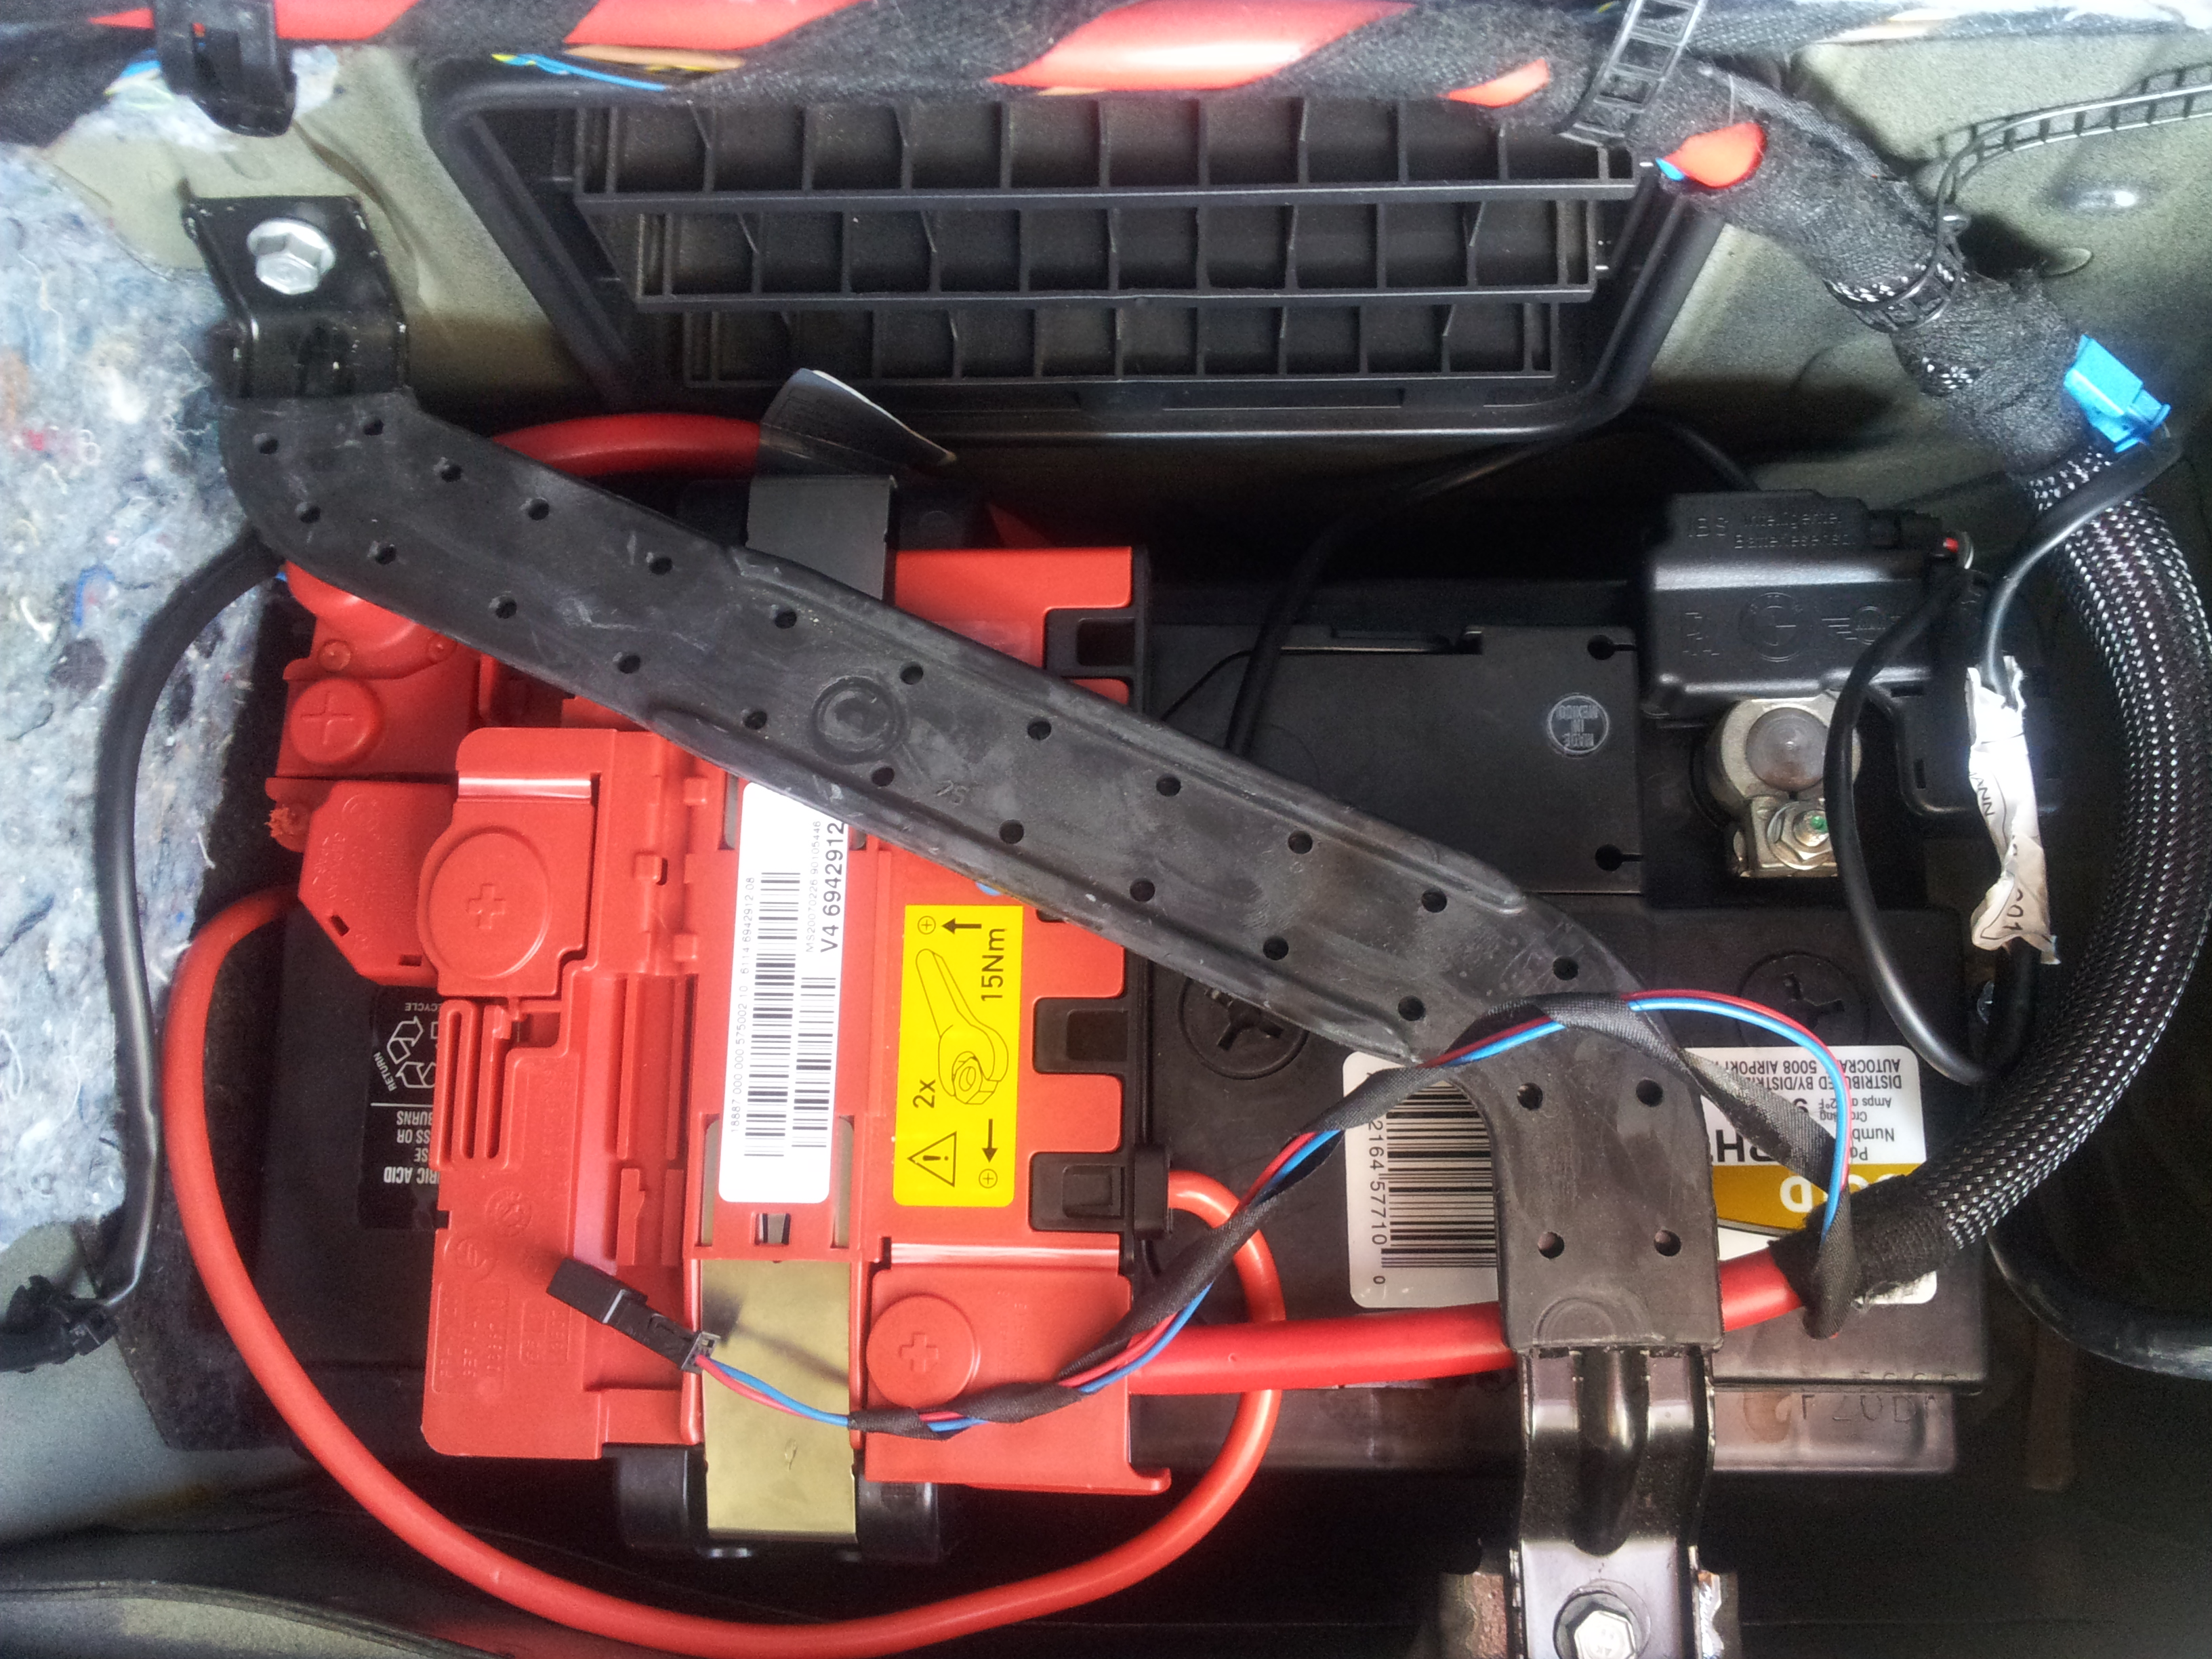 E Battery together with Bmw Trunk Tool Set W Battery Cover E I I I I I M Sedan Only as well Picture as well D Xi Glove Box Fuse Diagram E Glove Box Fuse Layout also Pic. on 2008 bmw 335i battery location